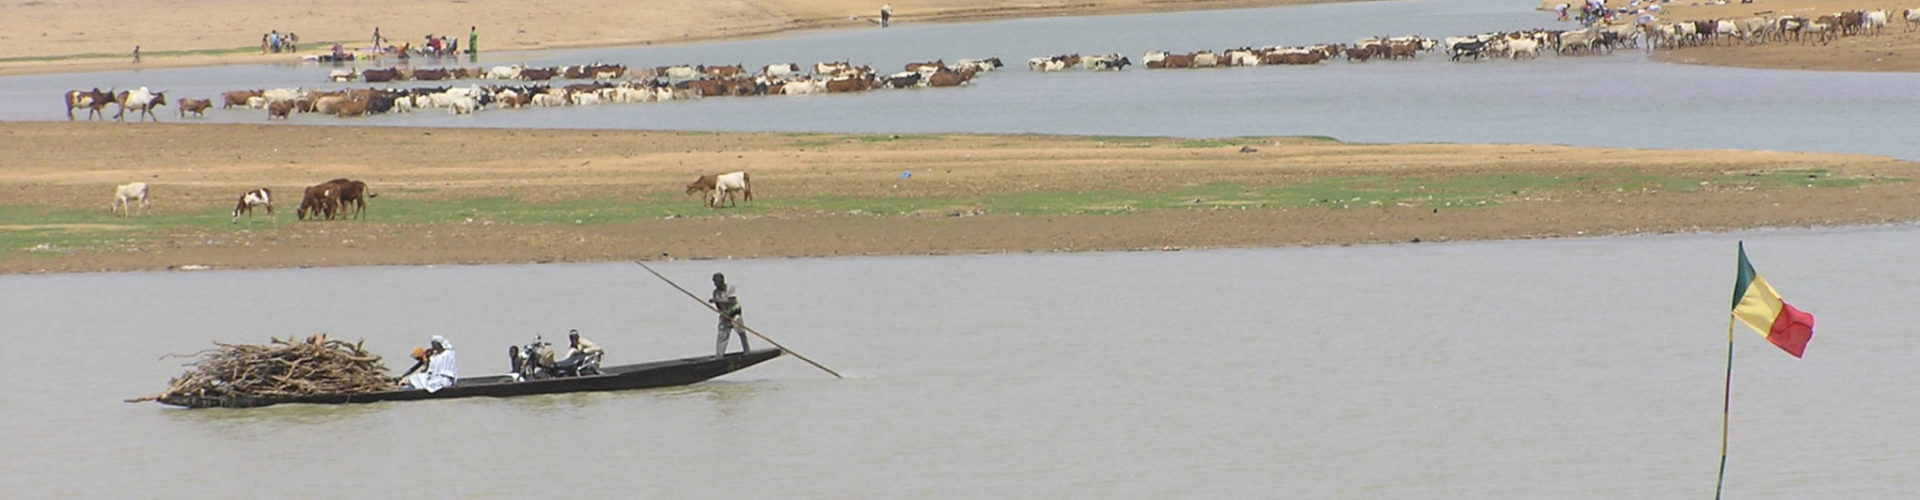 cattle crossing the river in Mali.